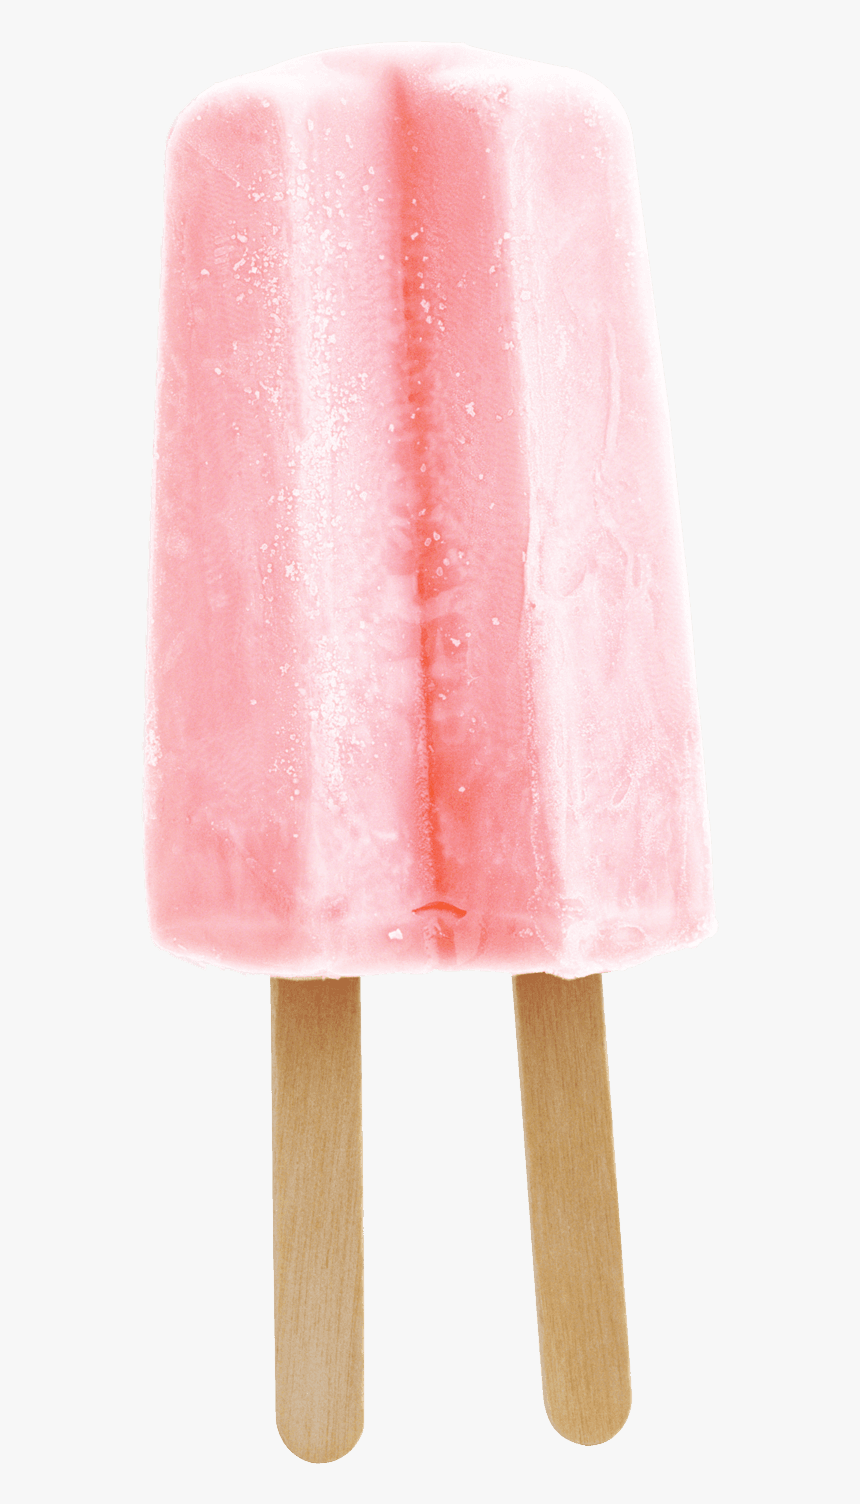 Pop Ice Hd : Popsicle, Faeminist, Tumblr, Download, Kindpng